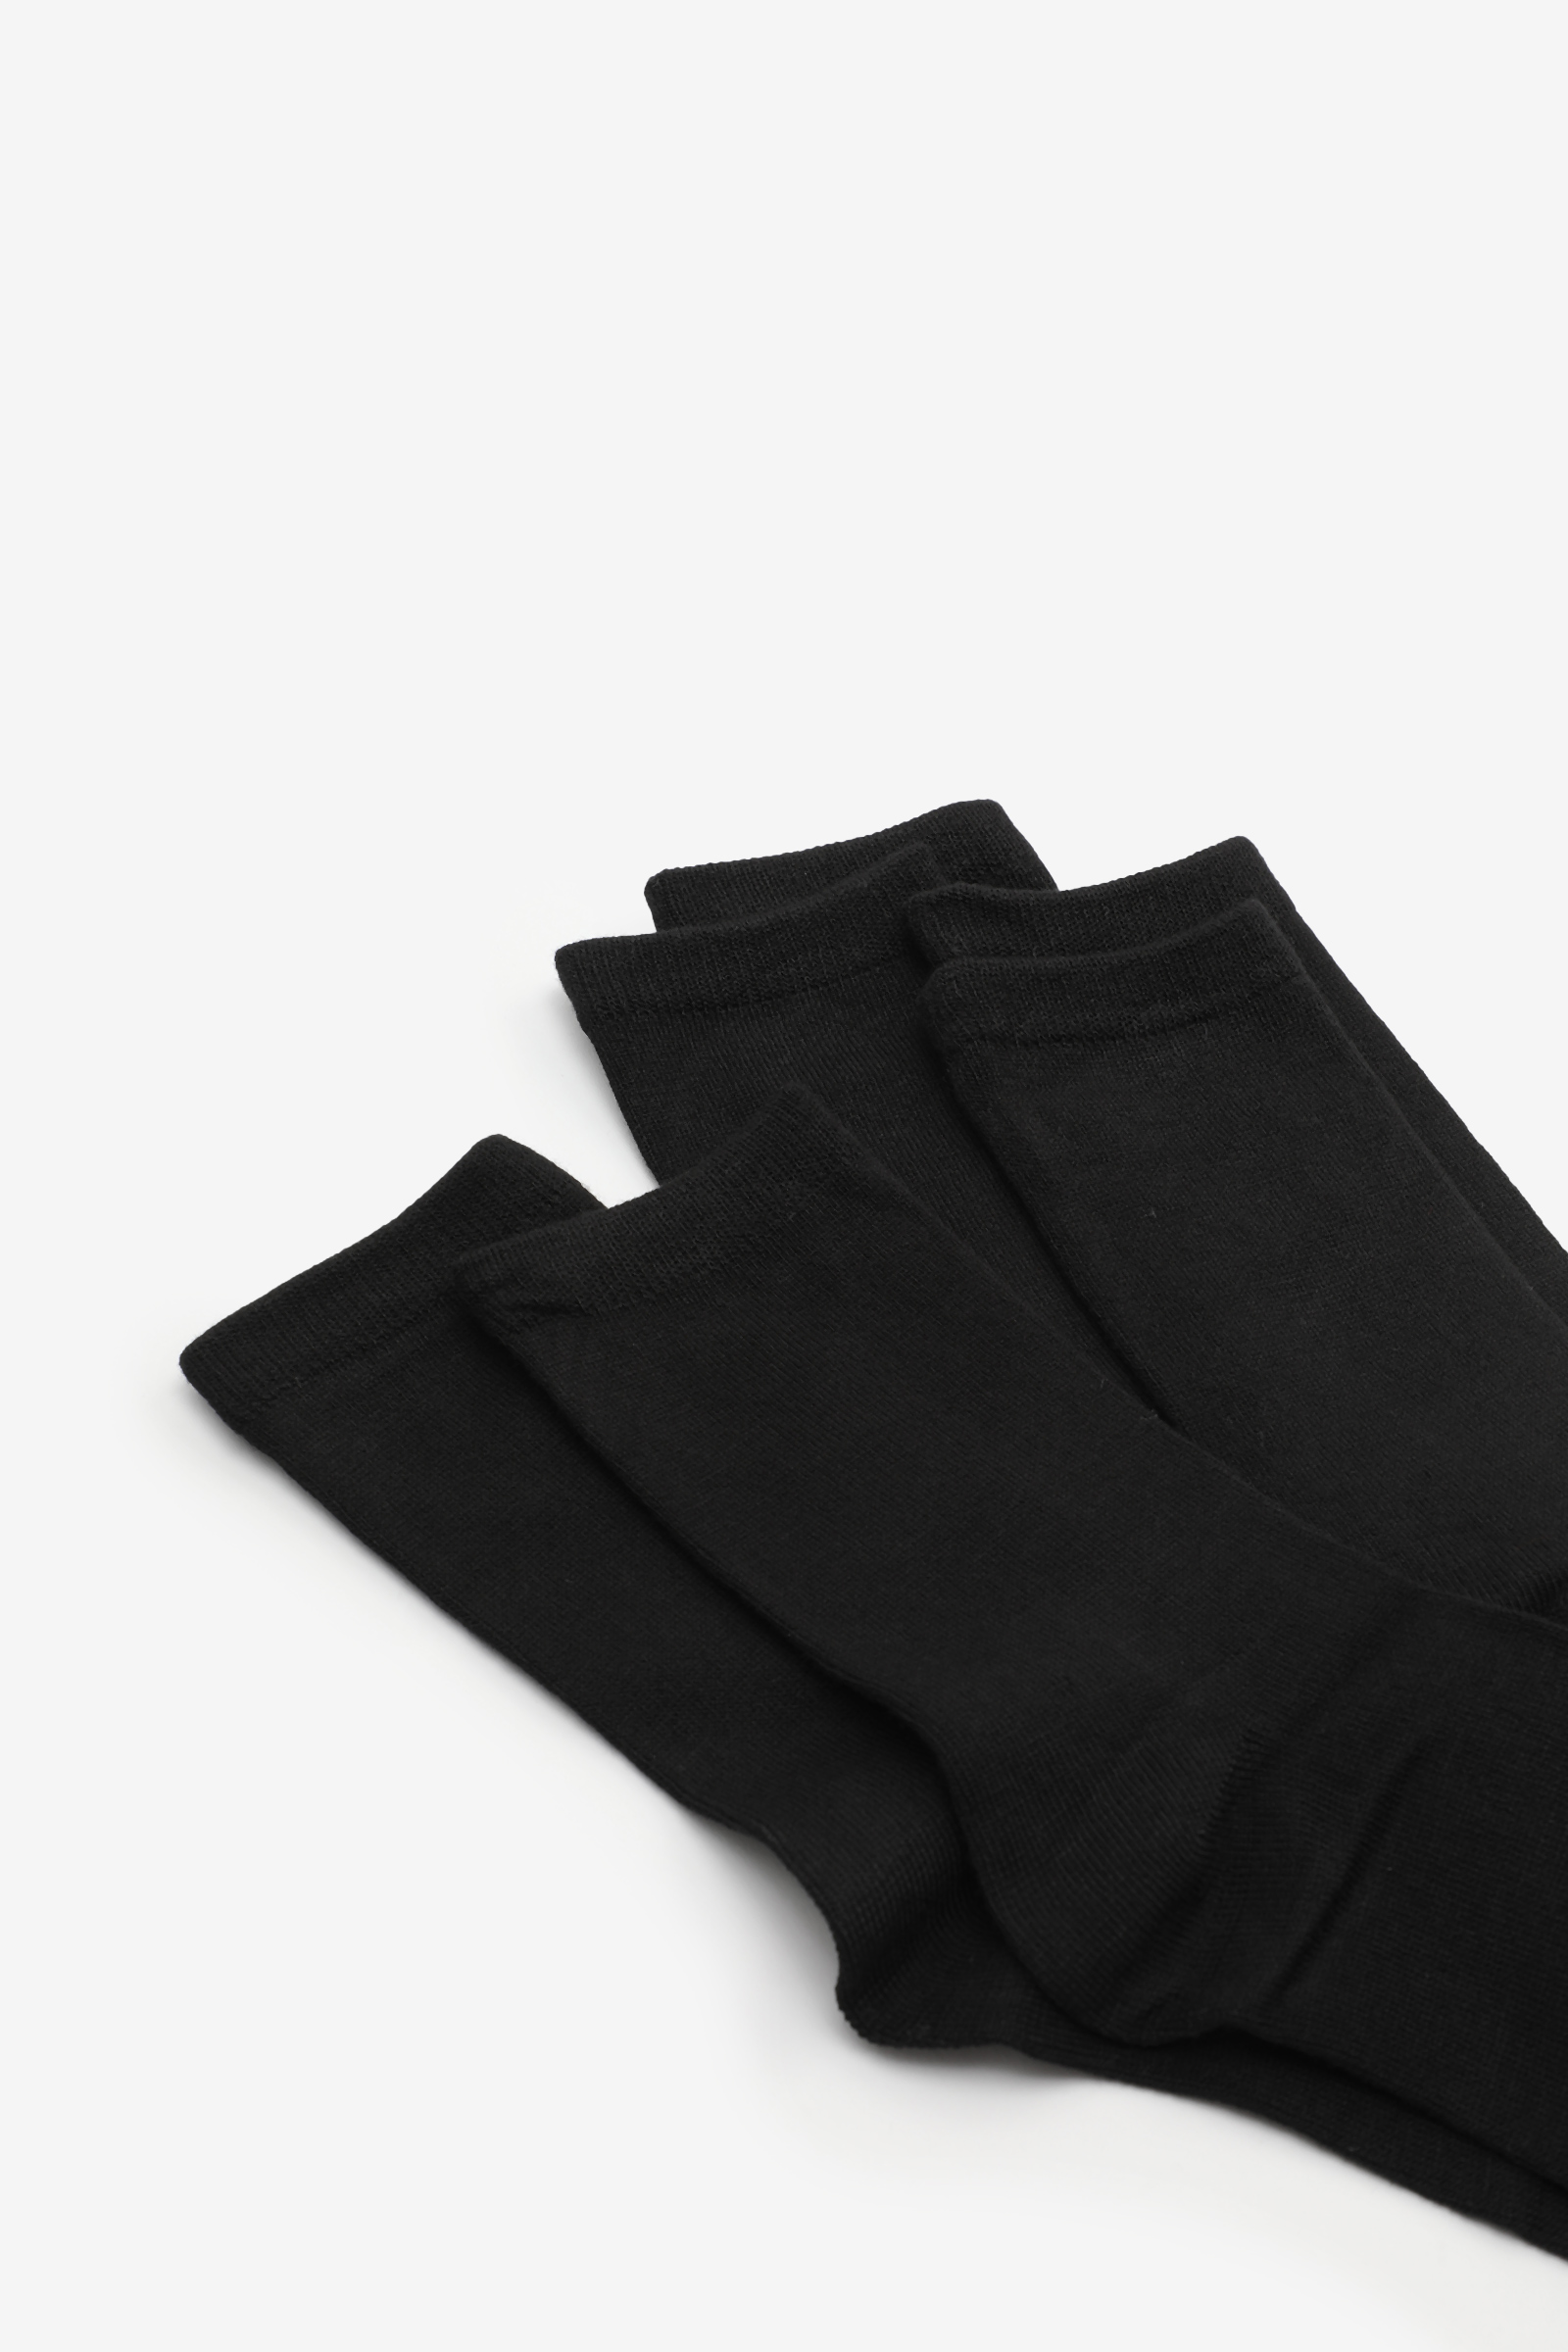 Pack of Eco-Conscious Bamboo Socks